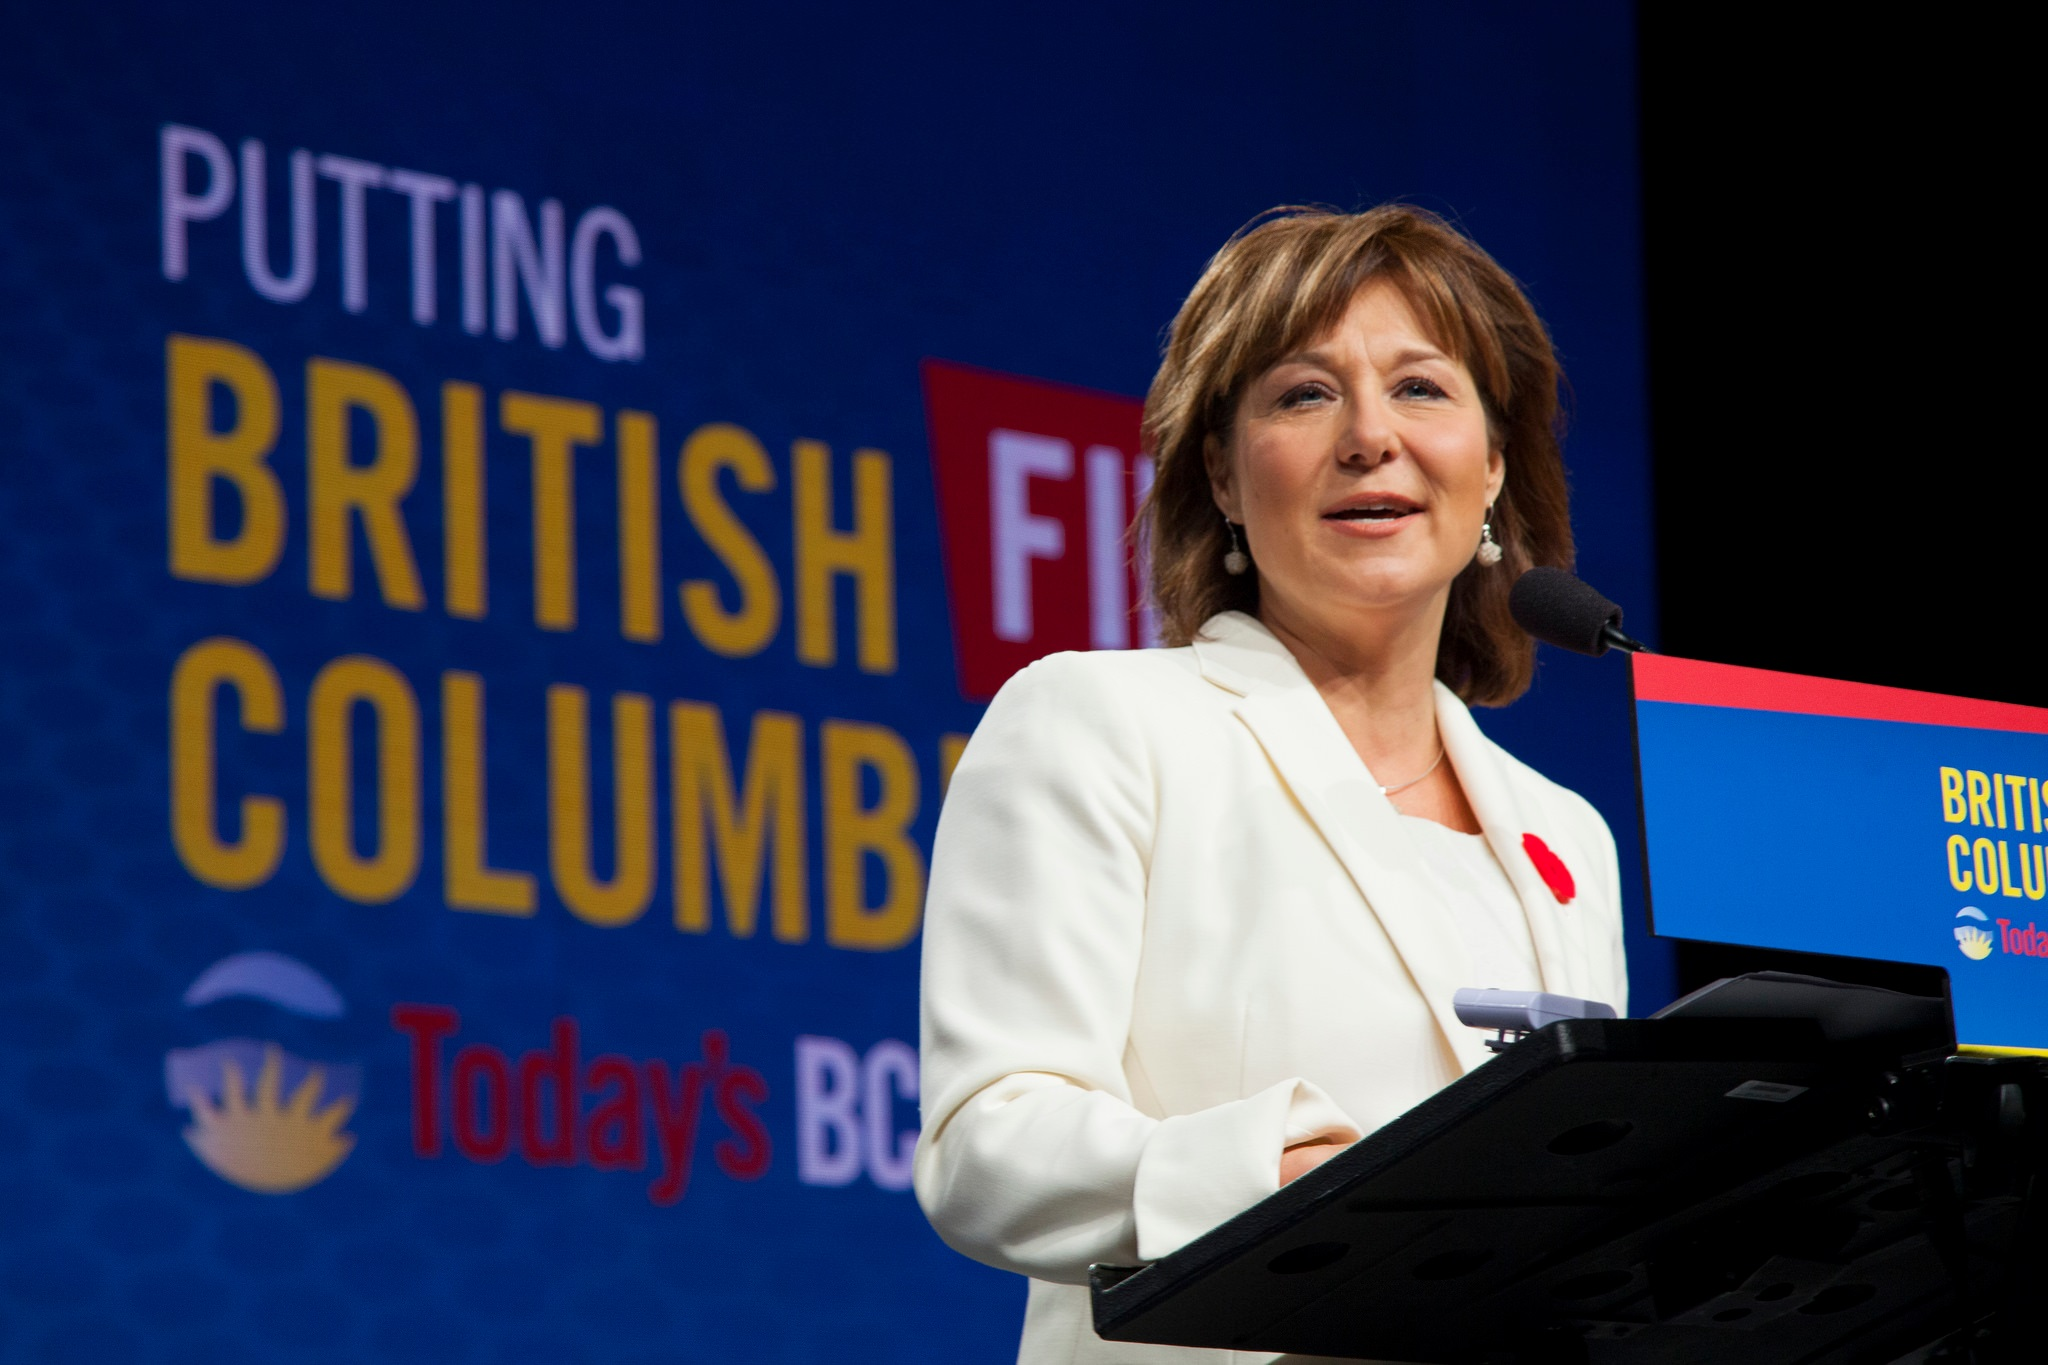 Christy-Clark-White-Blazer.jpg